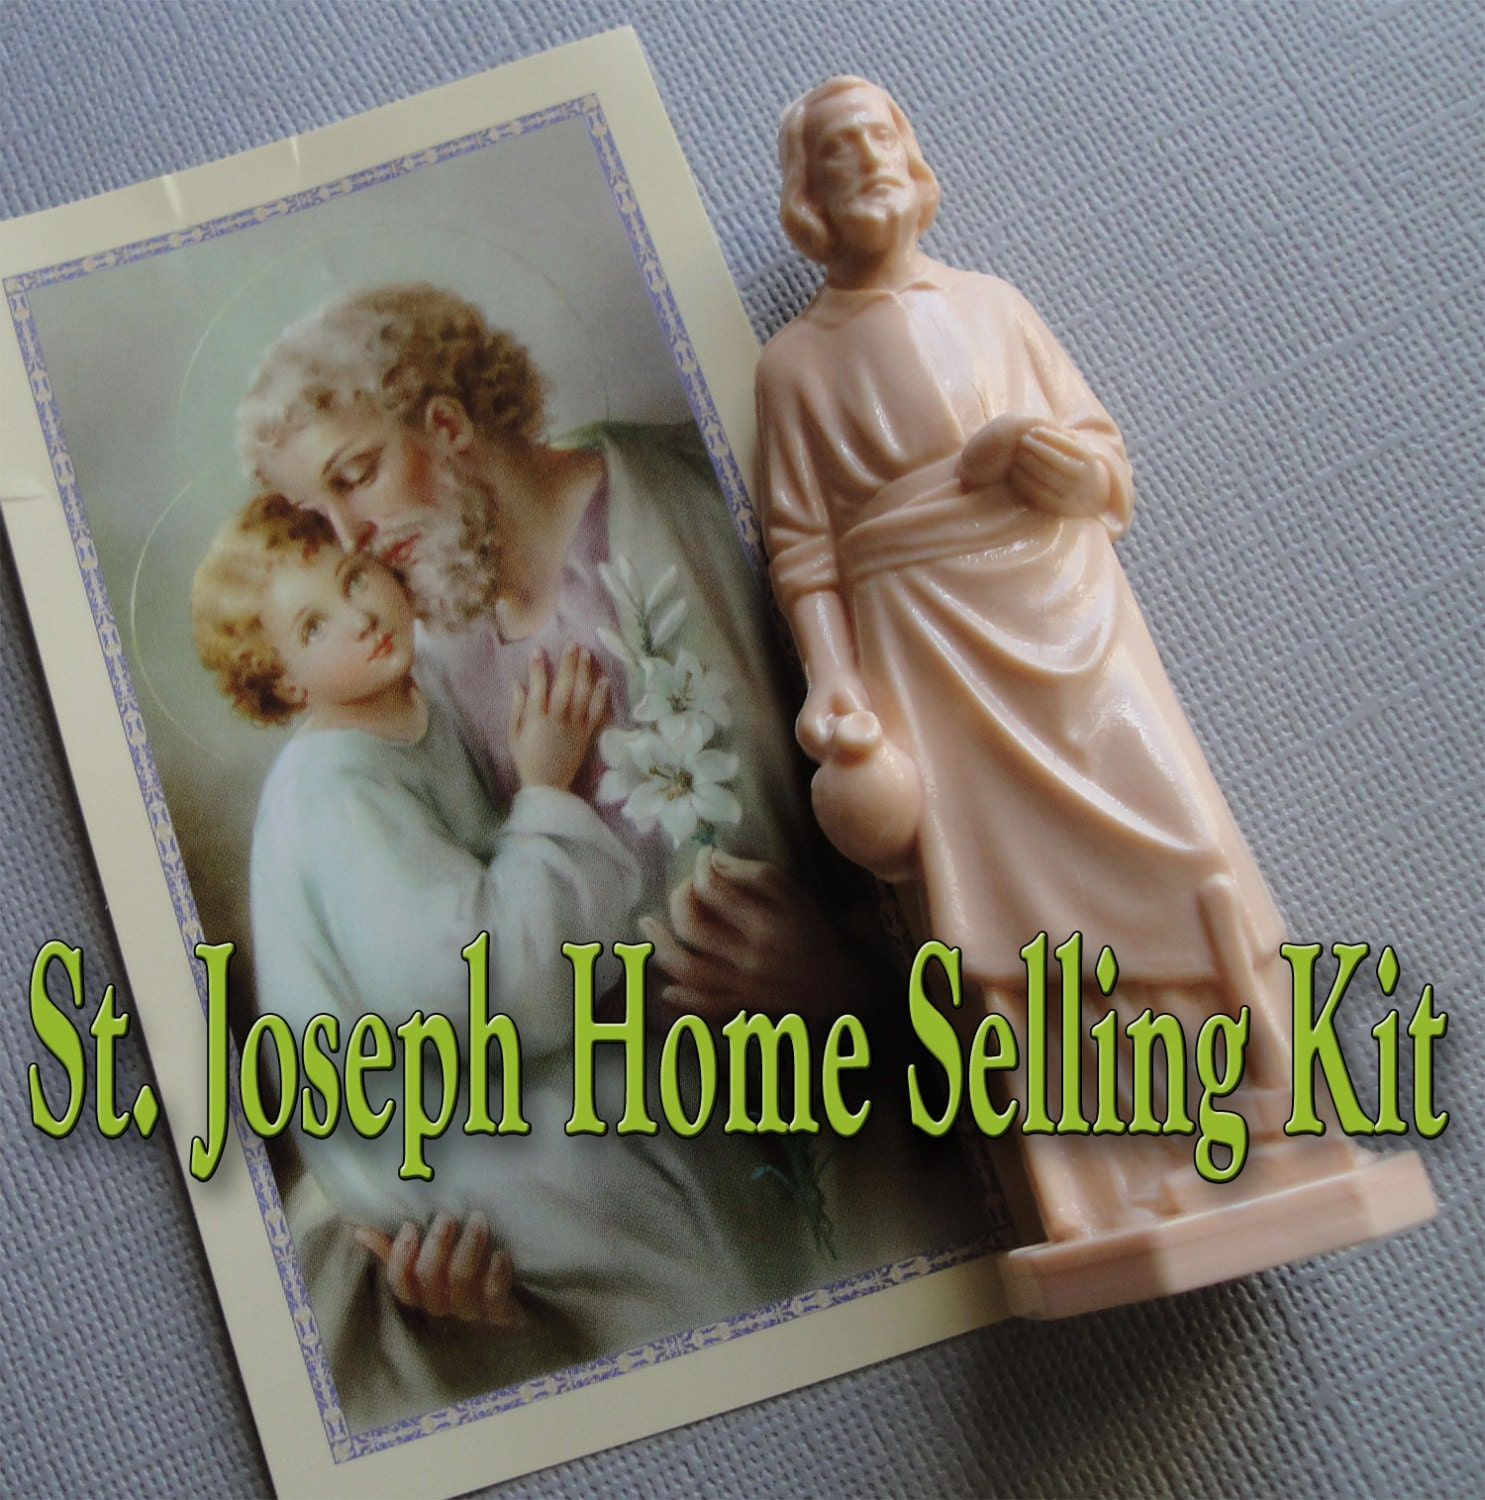 st joseph home selling kit trusted by by eyecandyantiques on etsy. Black Bedroom Furniture Sets. Home Design Ideas